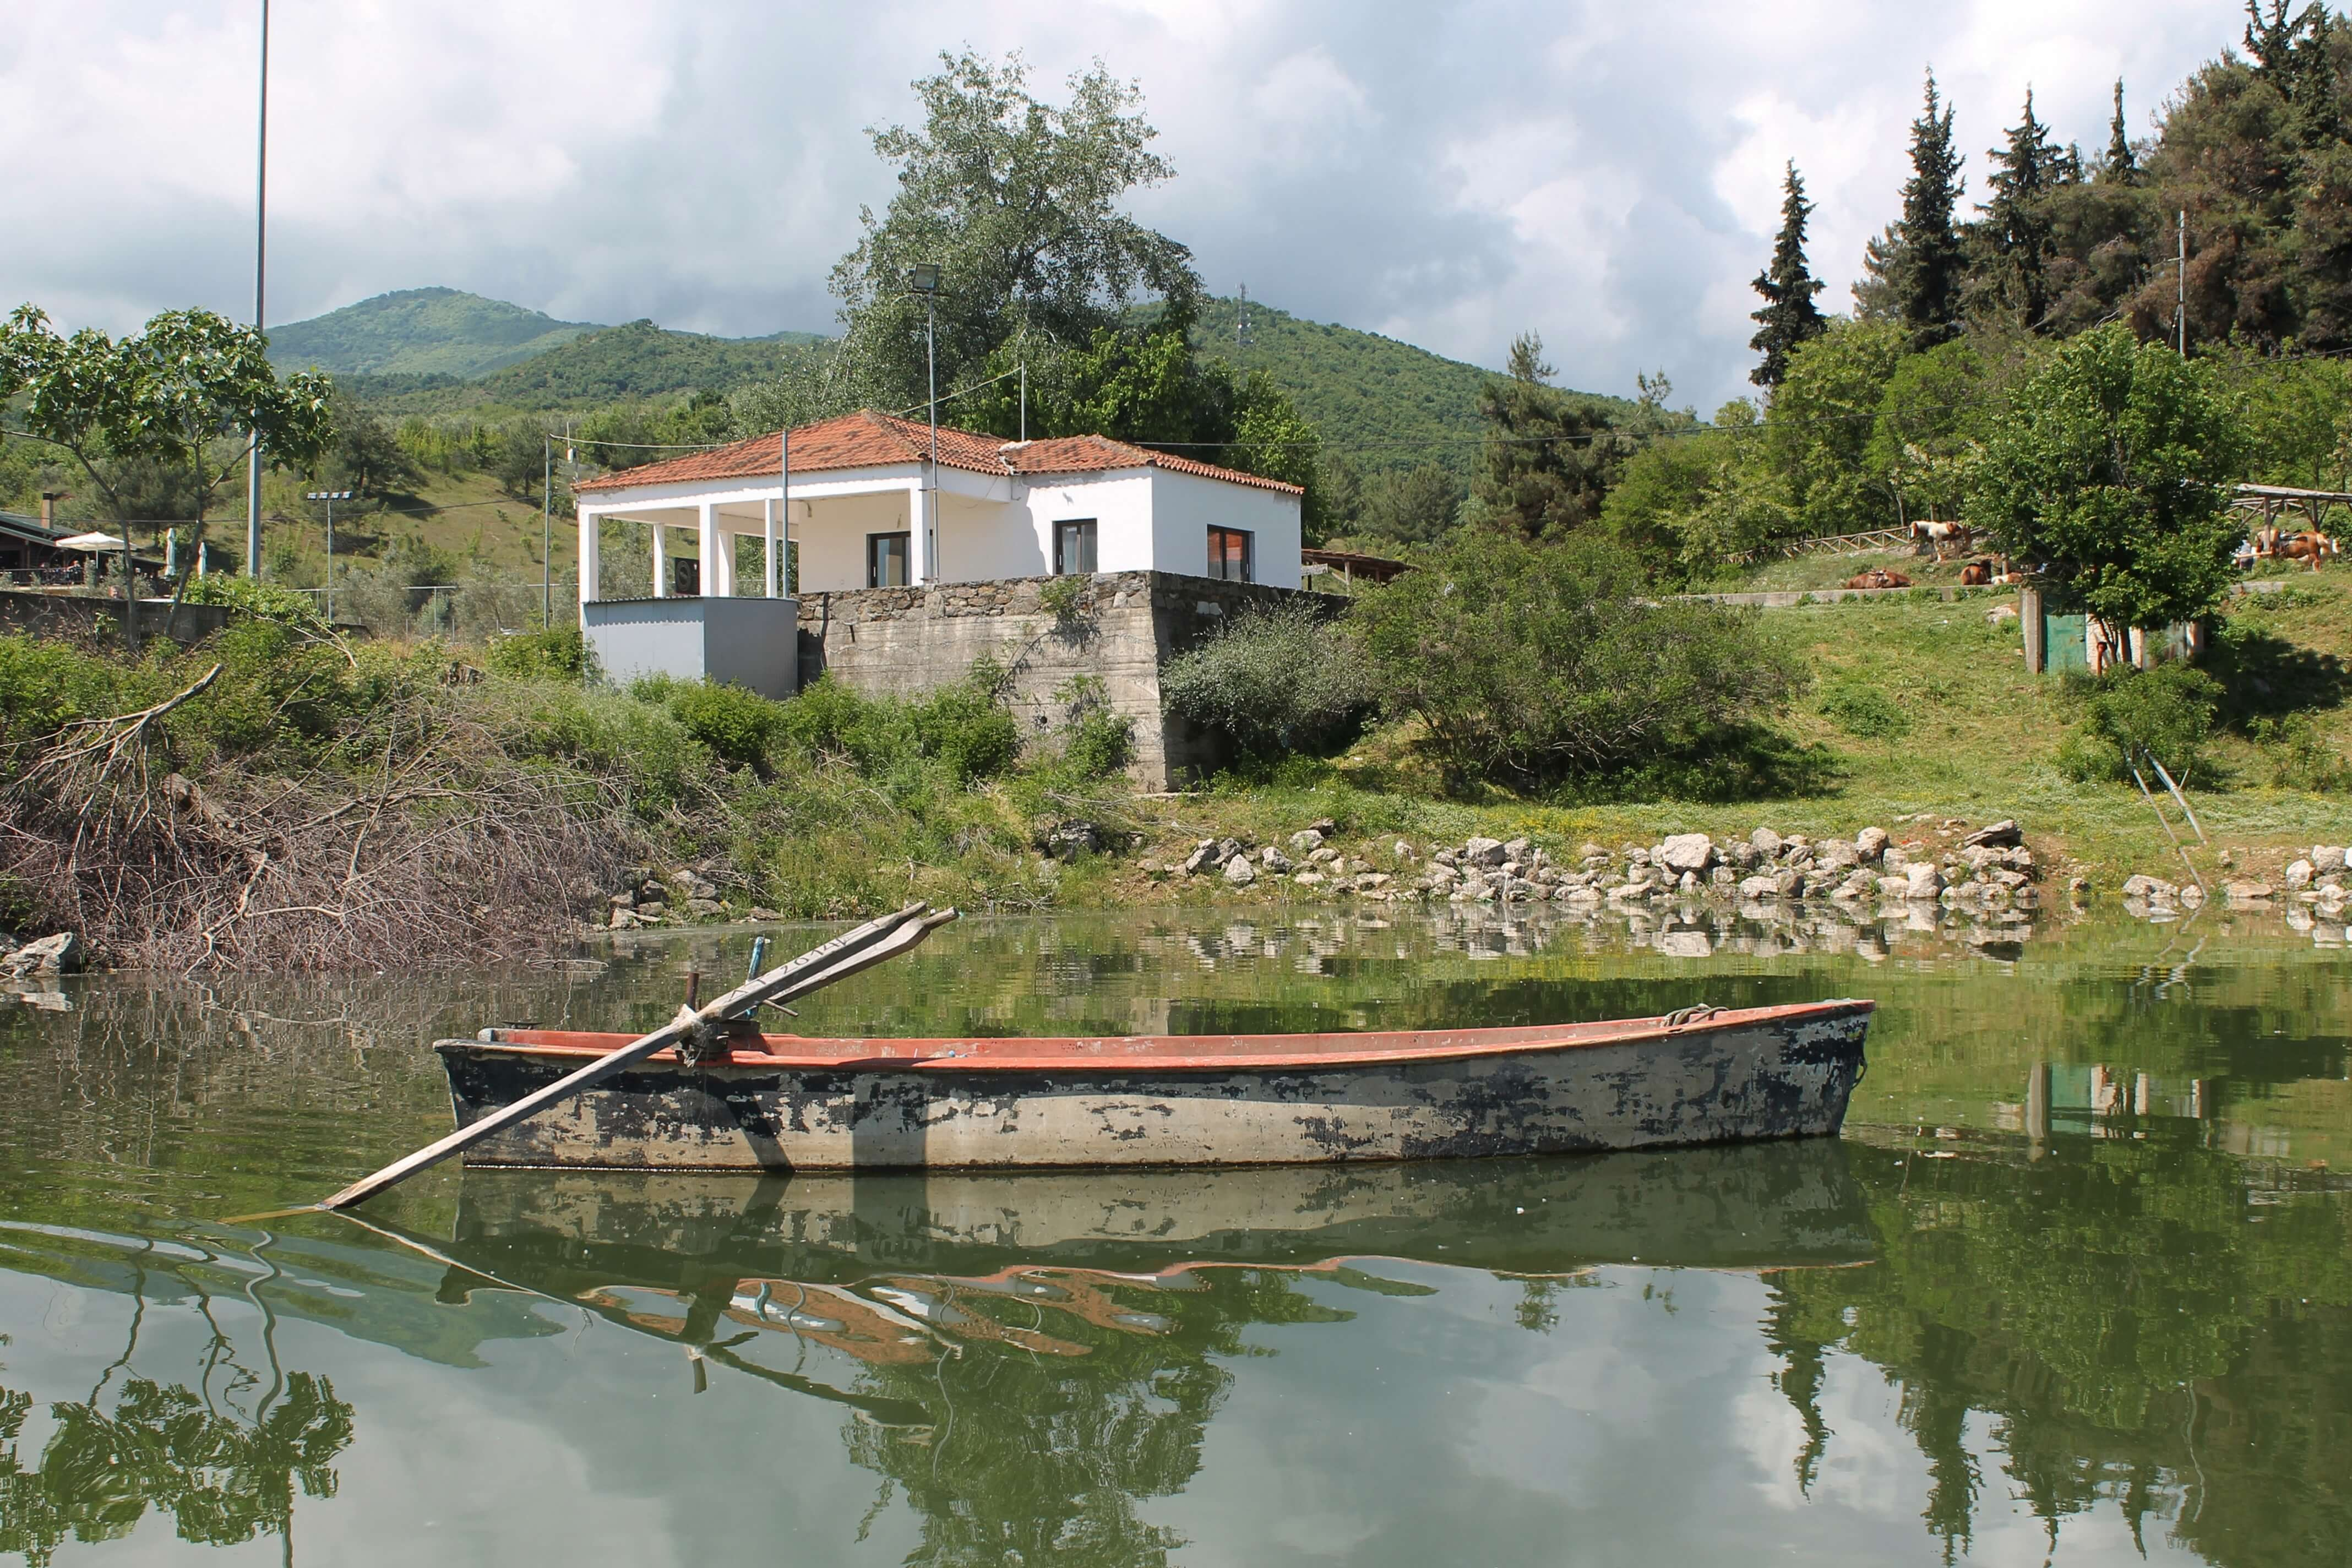 Lake Kerkini, Serres, Greece | Kicking Back the Pebbles